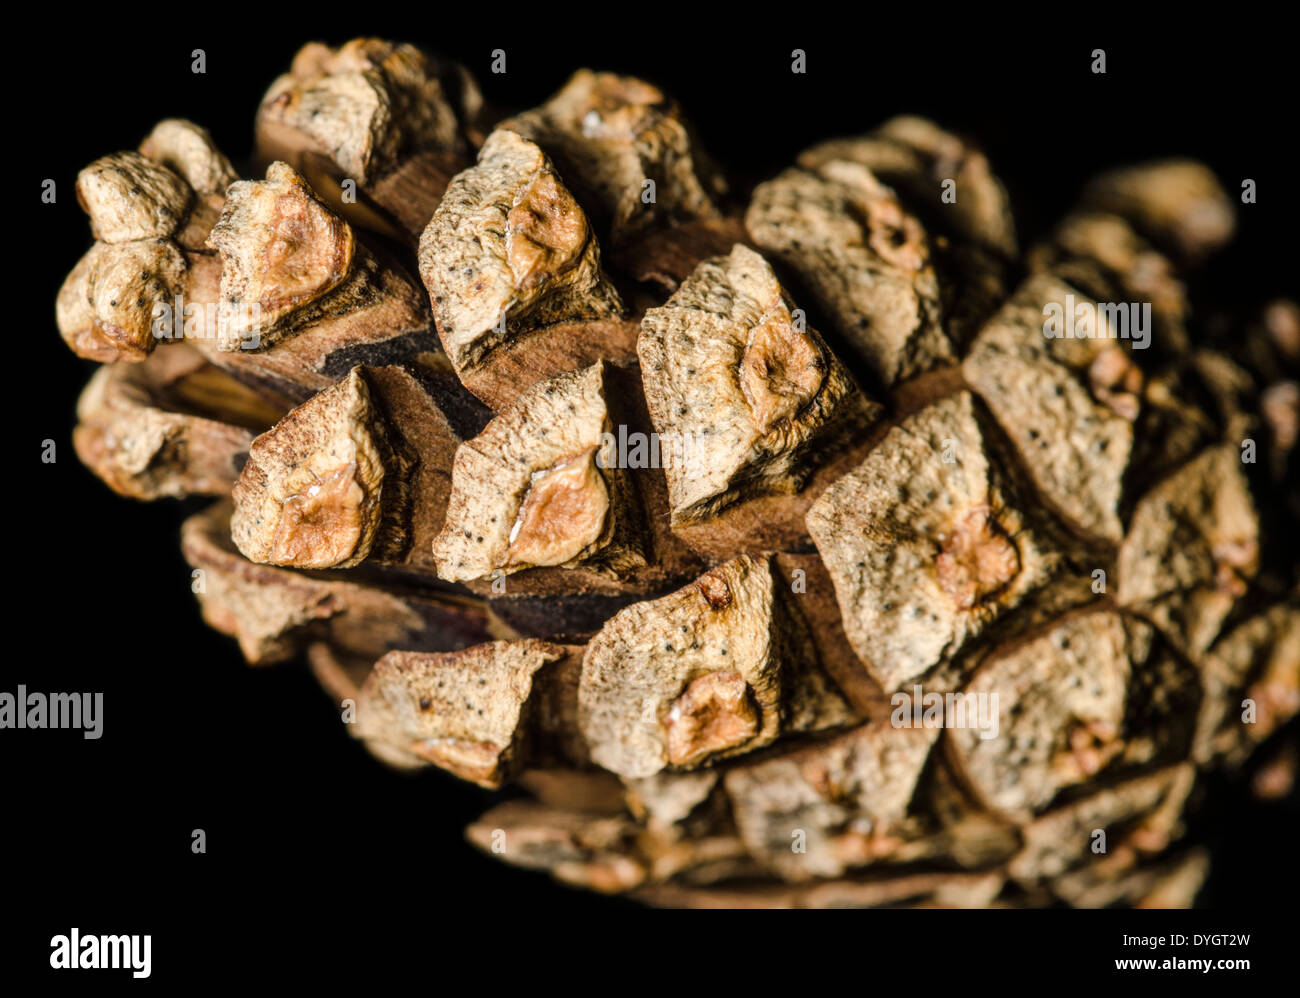 Conifer Pine cone on a black background. - Stock Image